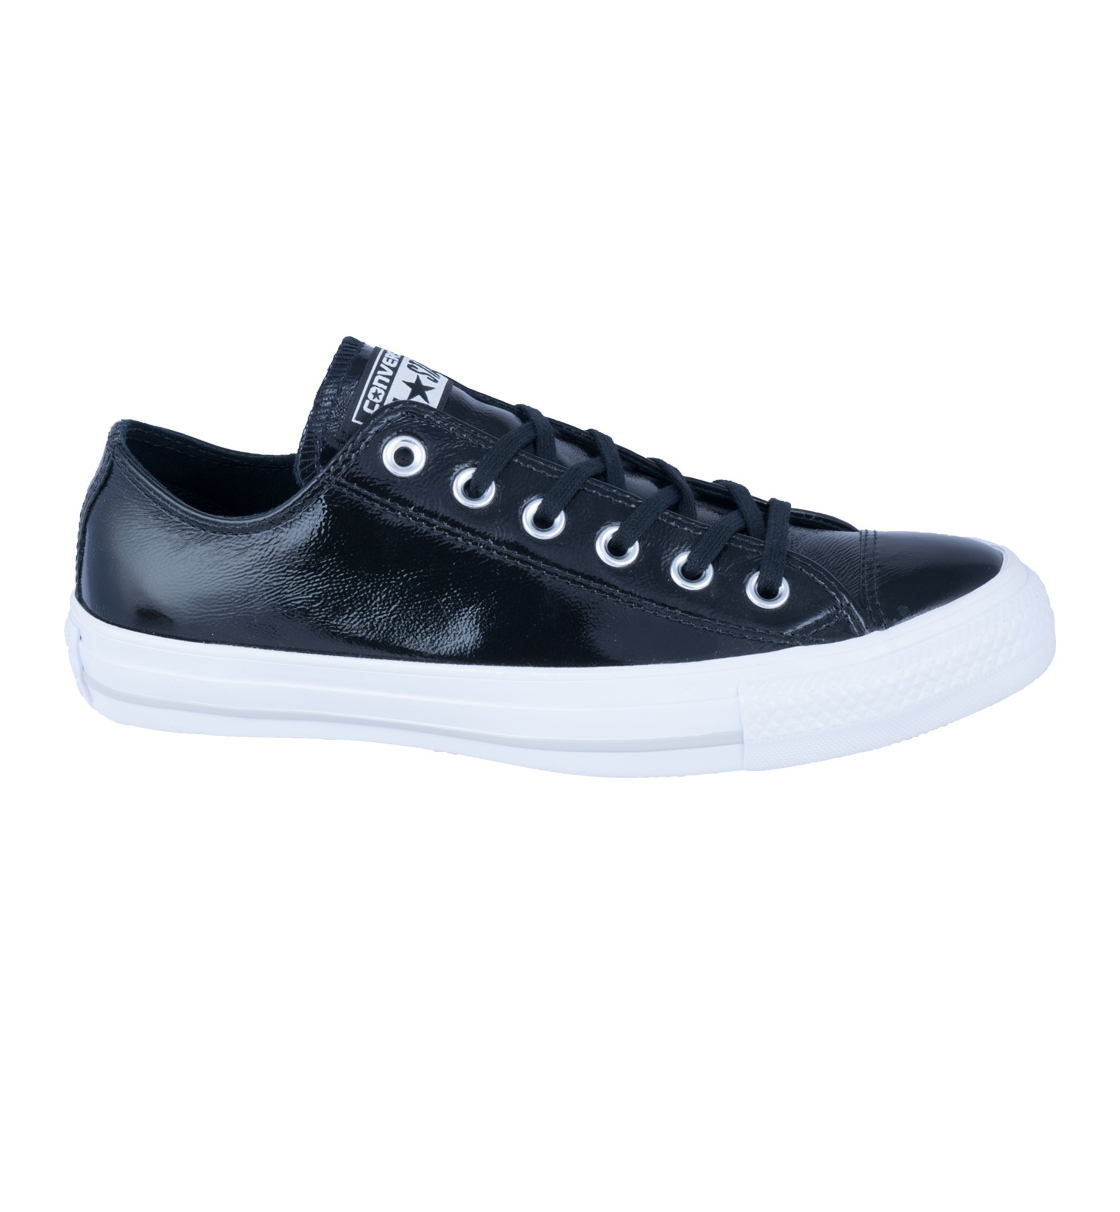 Converse Γυναικείο Παπούτσι Μόδας Chuck Taylor All Star Crinkled Patent Leather 558002C